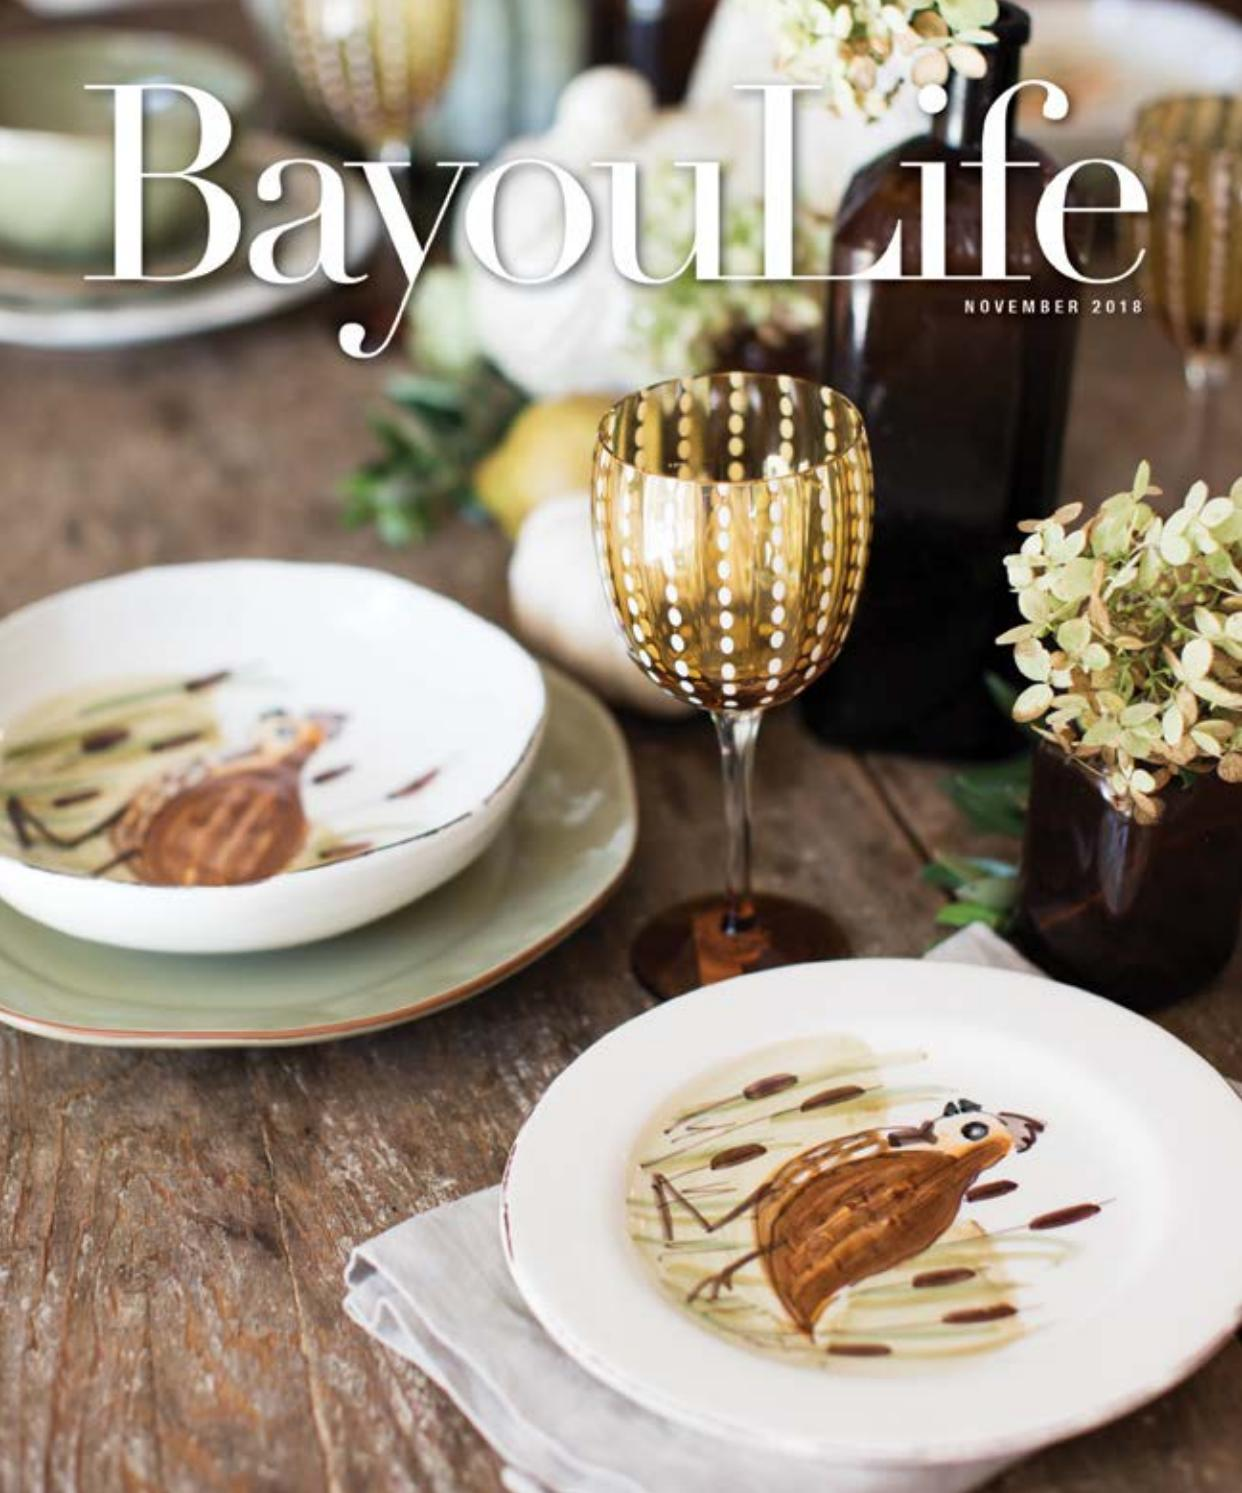 Bayoulife November 2018 By Magazine Issuu Illuminated Circuit Board Coffee Table Is Geek Diy Chic Decor